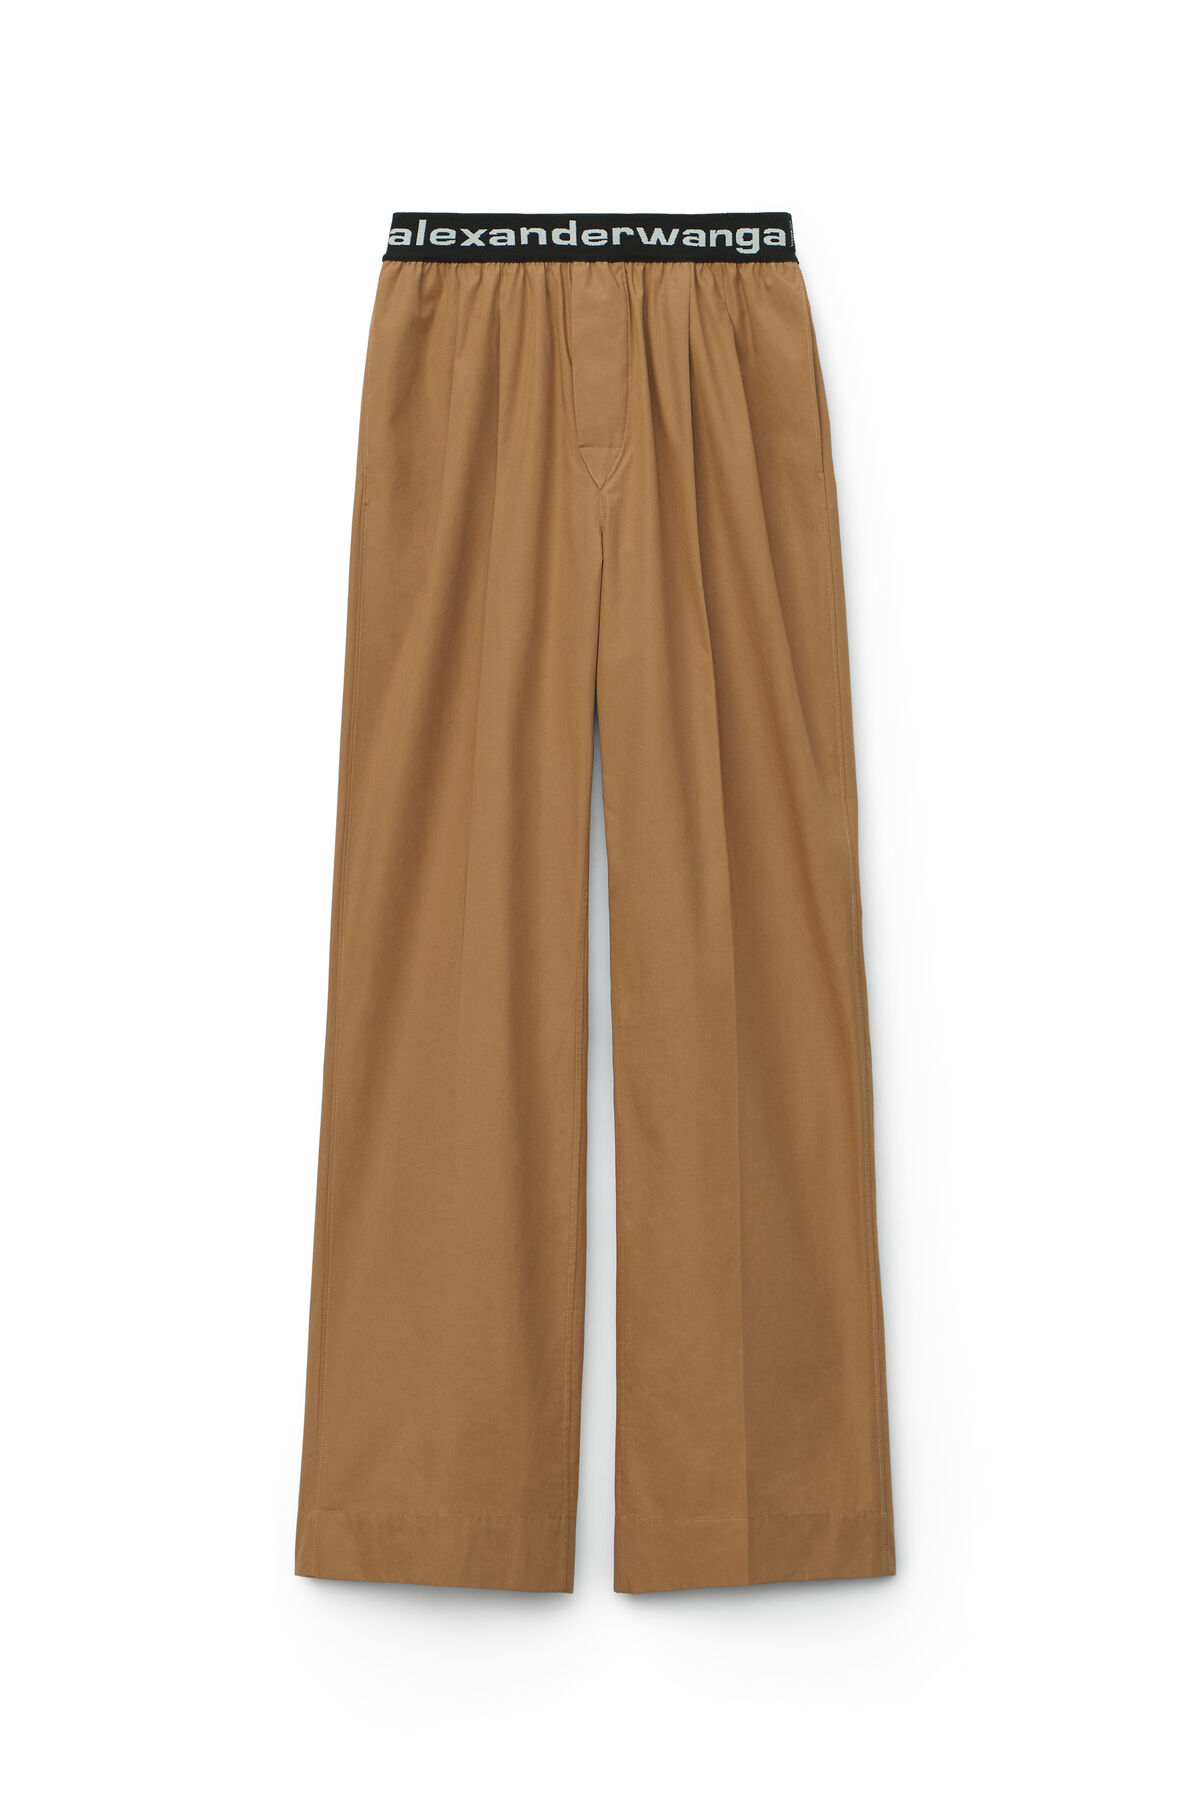 PULL-ON PLEATED PANT by Alexander Wang, available on alexanderwang.com for $235 Kylie Jenner Pants SIMILAR PRODUCT